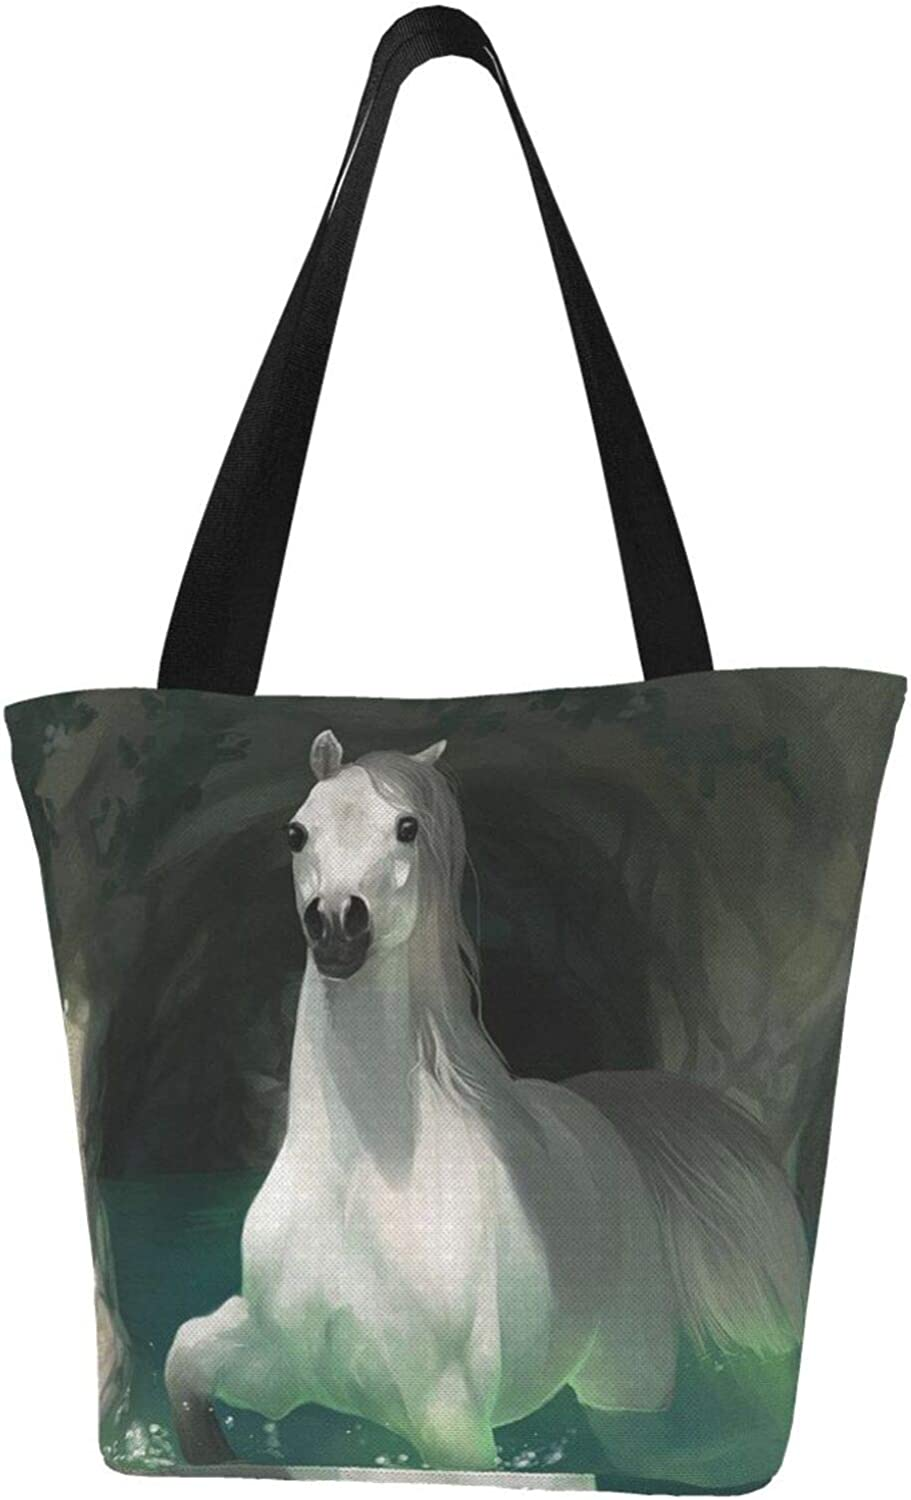 Lovely White Horse Stepping Water Funny Themed Printed Women Canvas Handbag Zipper Shoulder Bag Work Booksbag Tote Purse Leisure Hobo Bag For Shopping